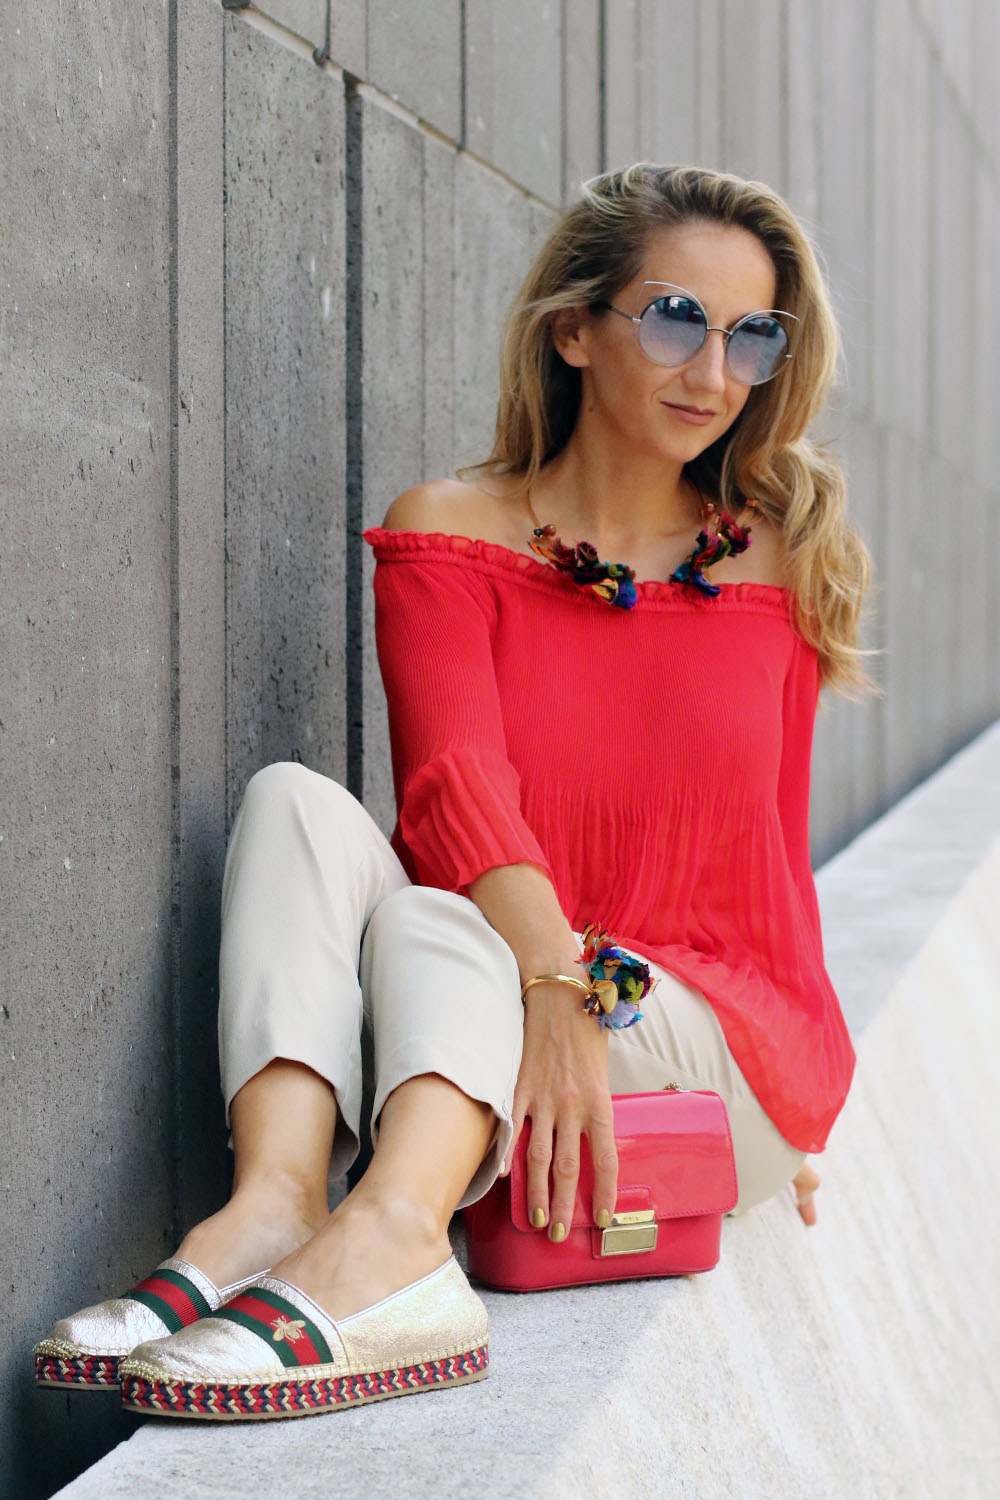 colourclub-modeblog-outfit-off-the-shoulder-top-gucci-shoes-furla-bag-thai-silk-juwelery-ornaments-lor12